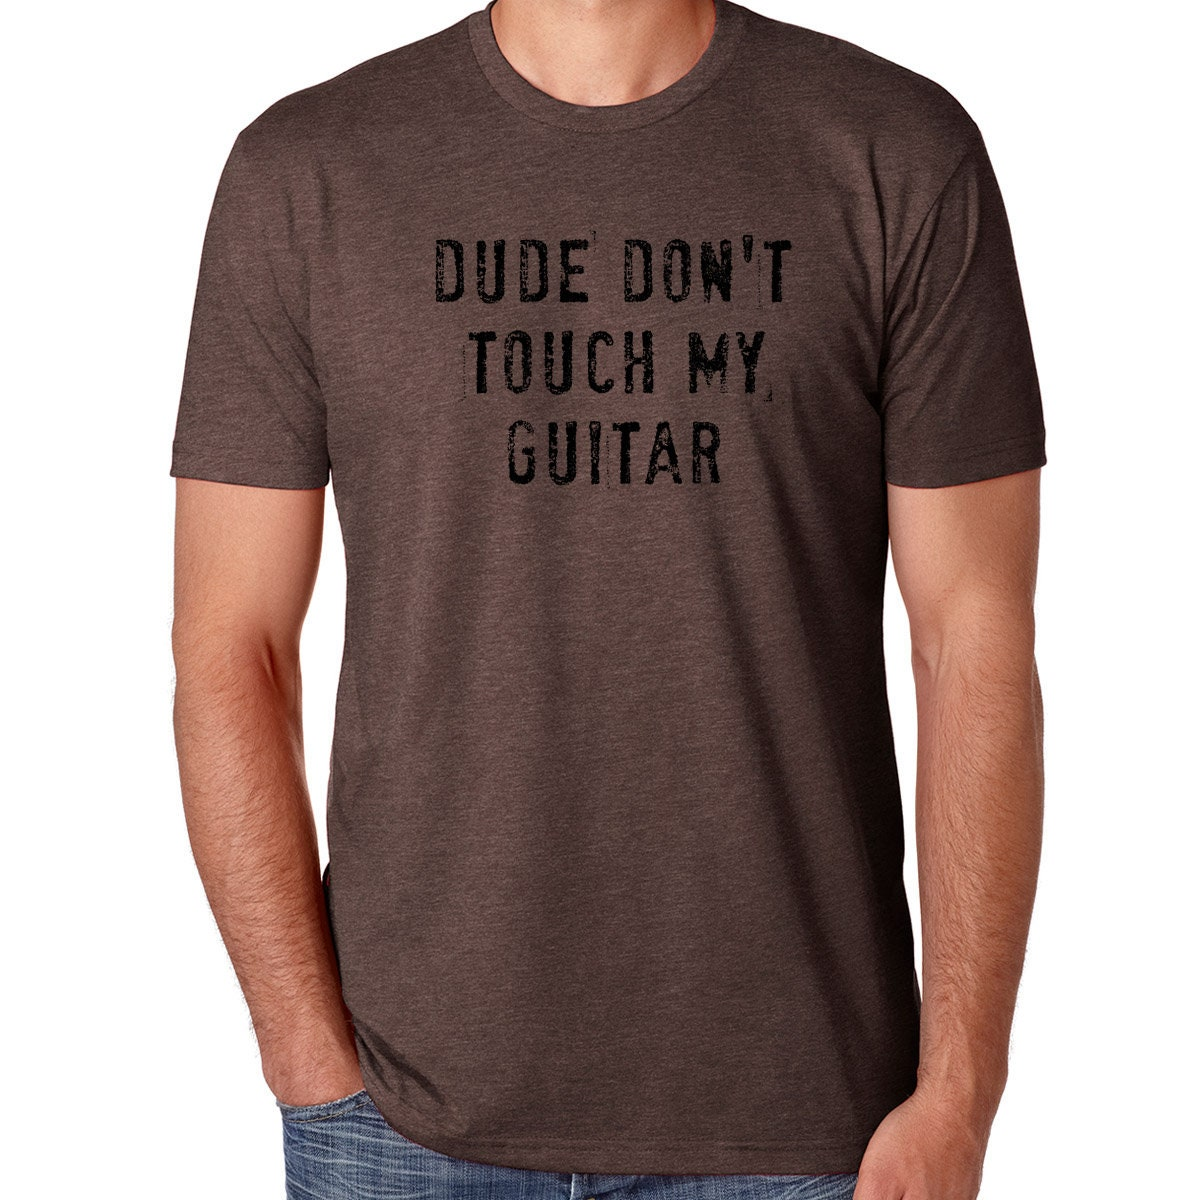 Guitar T Shirt Funny Music T Shirt Rock N Roll Tee T Shirts For